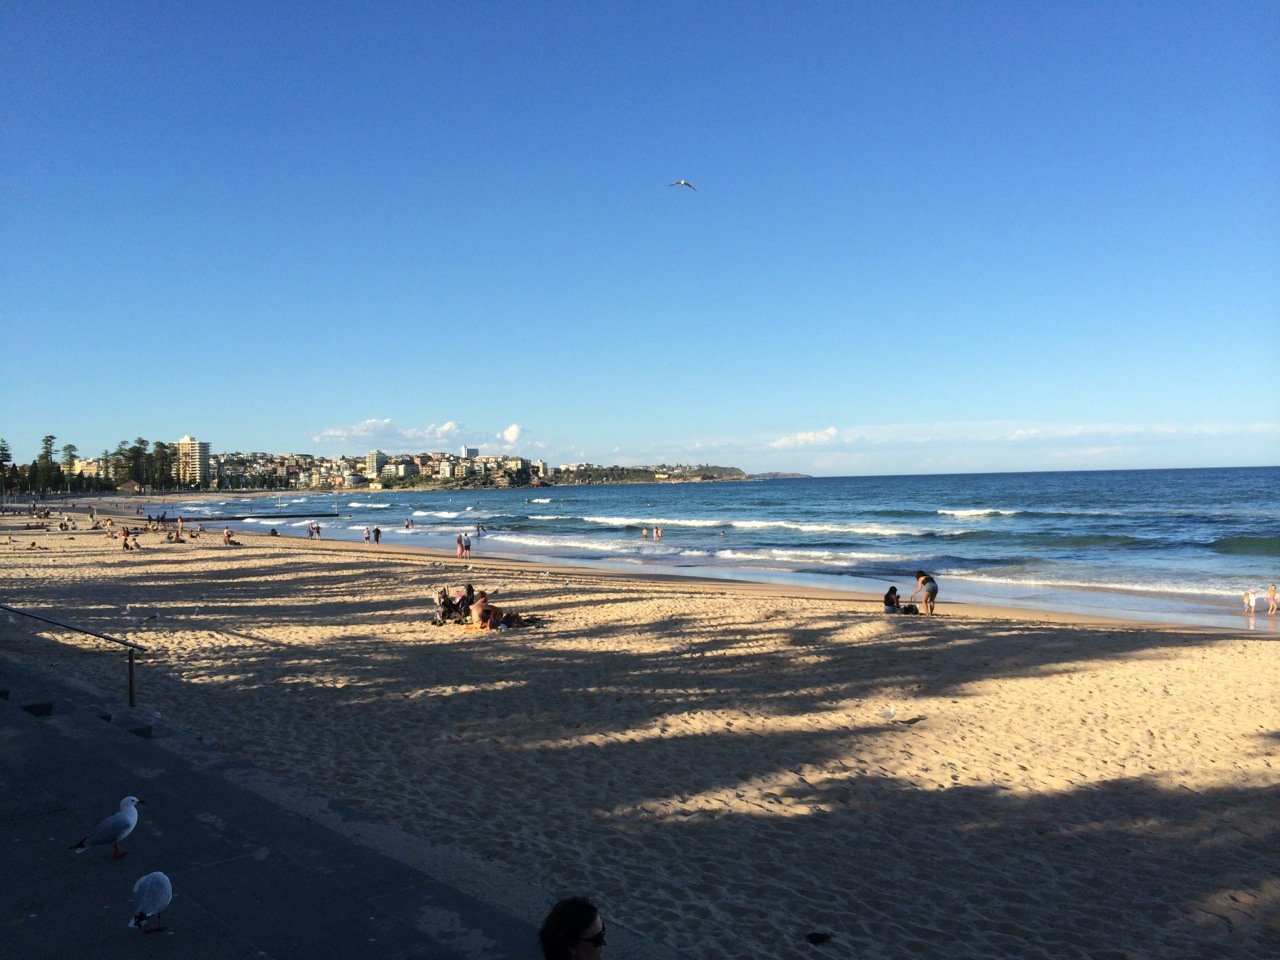 Manly Beach at 6 PM